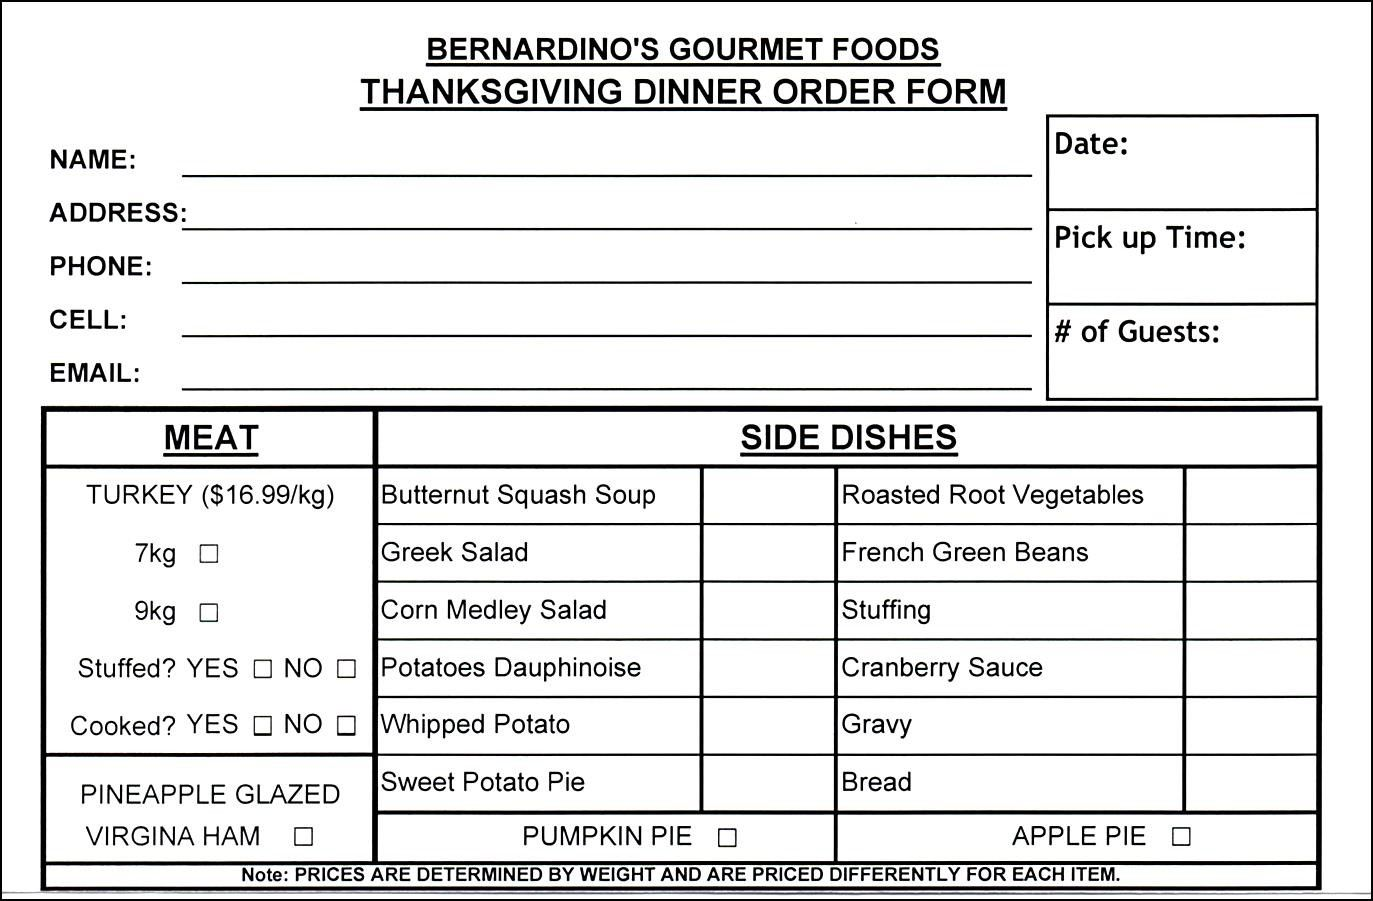 Thanksgiving Food Order Form Template | Besttemplates123